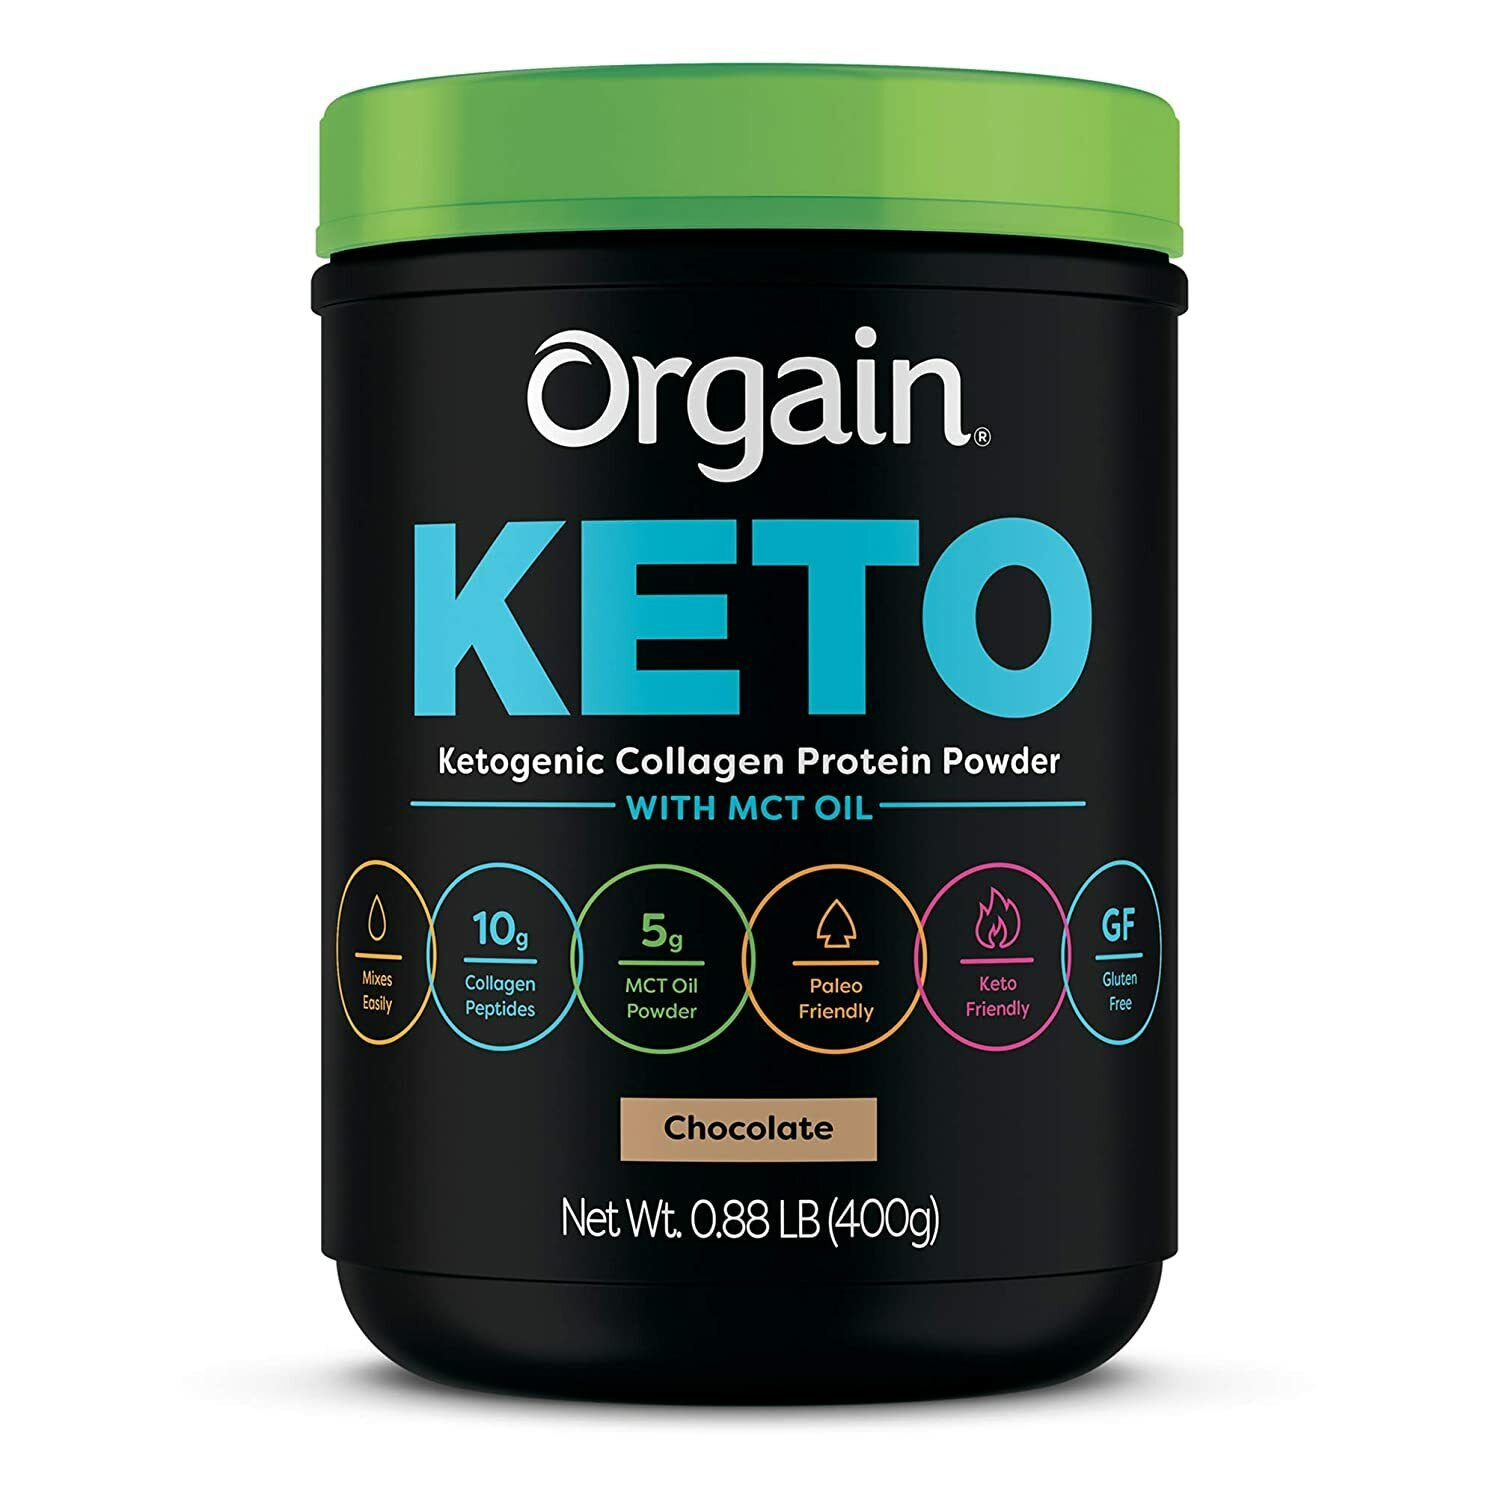 Orgain Keto Collagen Protein Powder with MCT Oil, Chocolate